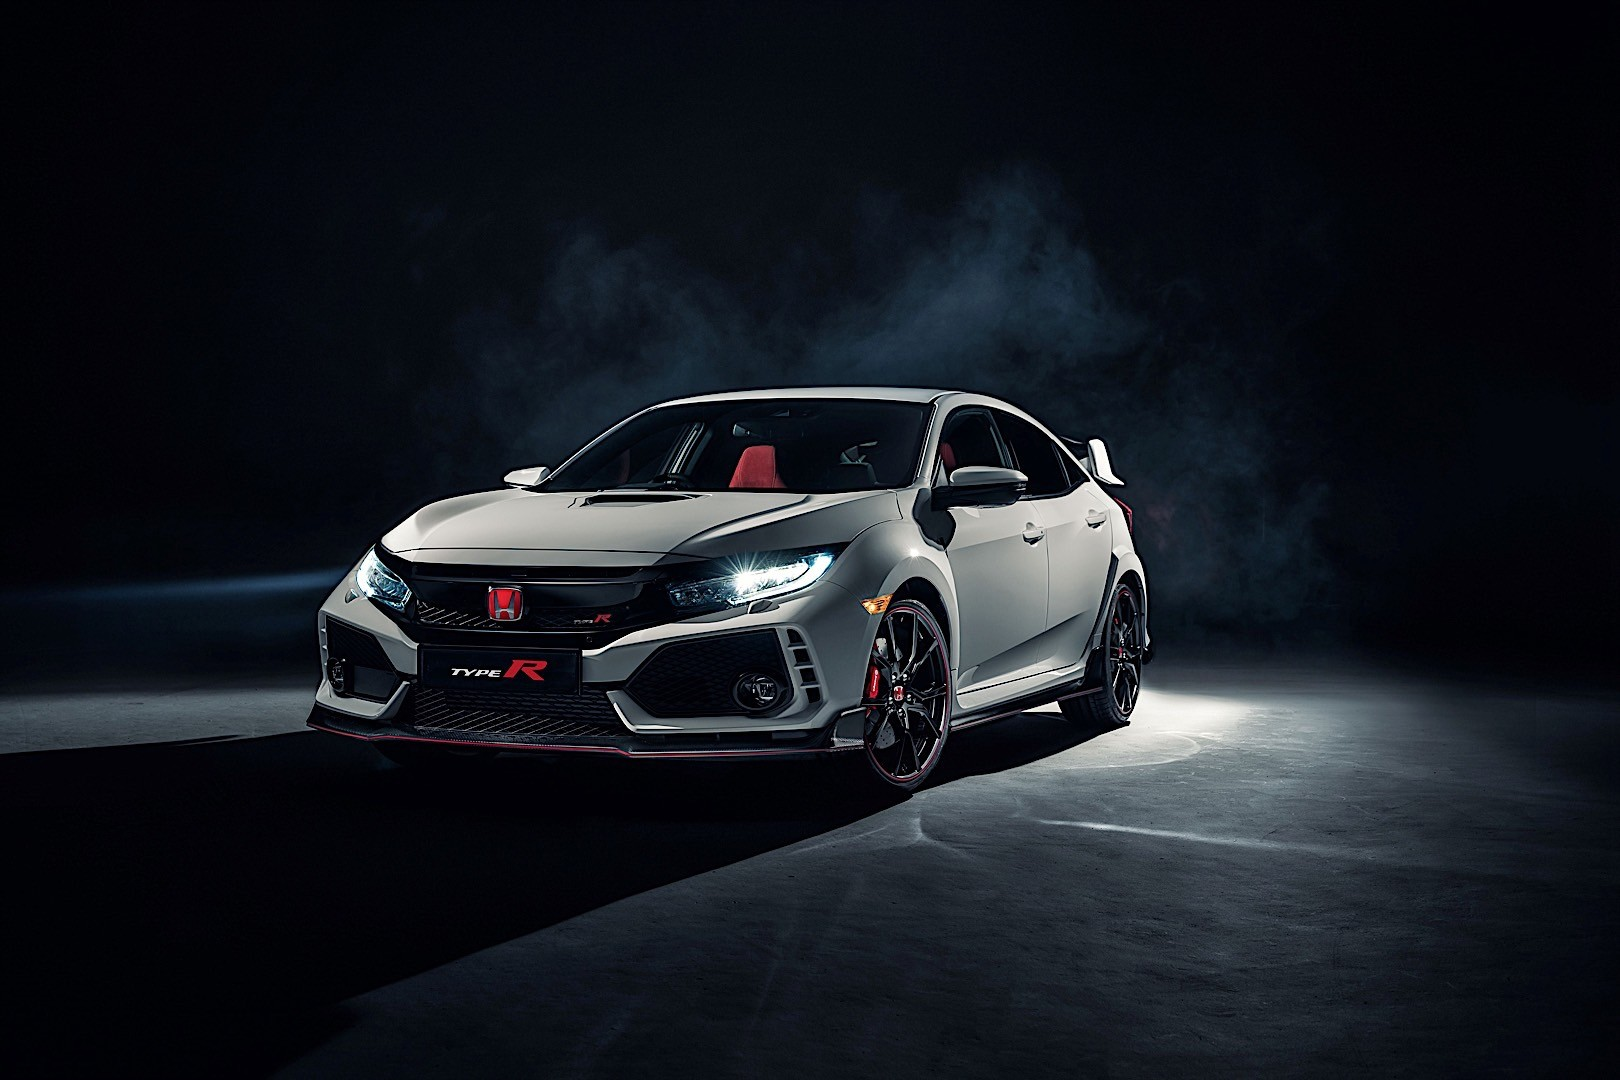 next-civic-type-r-could-be-a-400-hp-hybrid-monster-133050_1